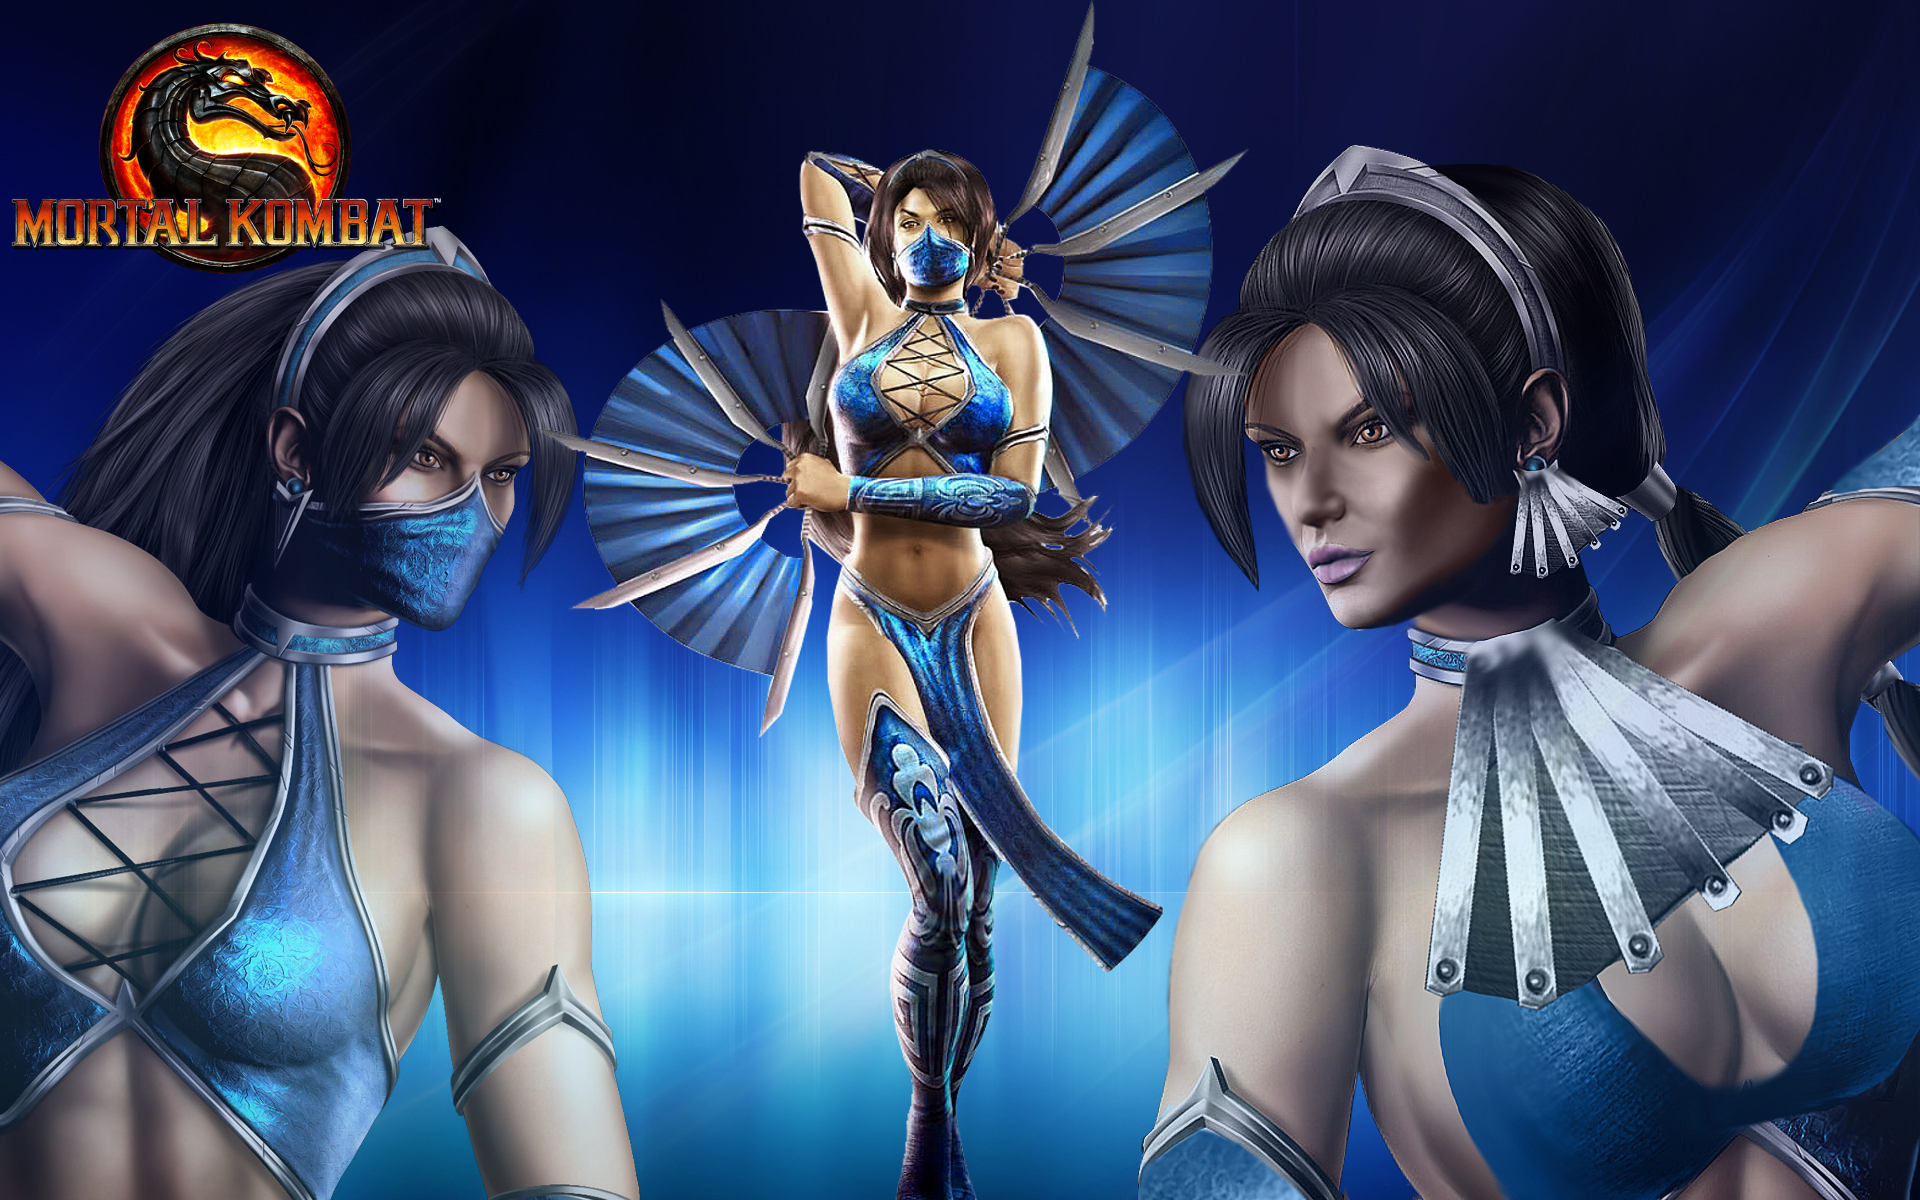 Mortal Kombat Kitana Wallpaper 32974 Loadtve